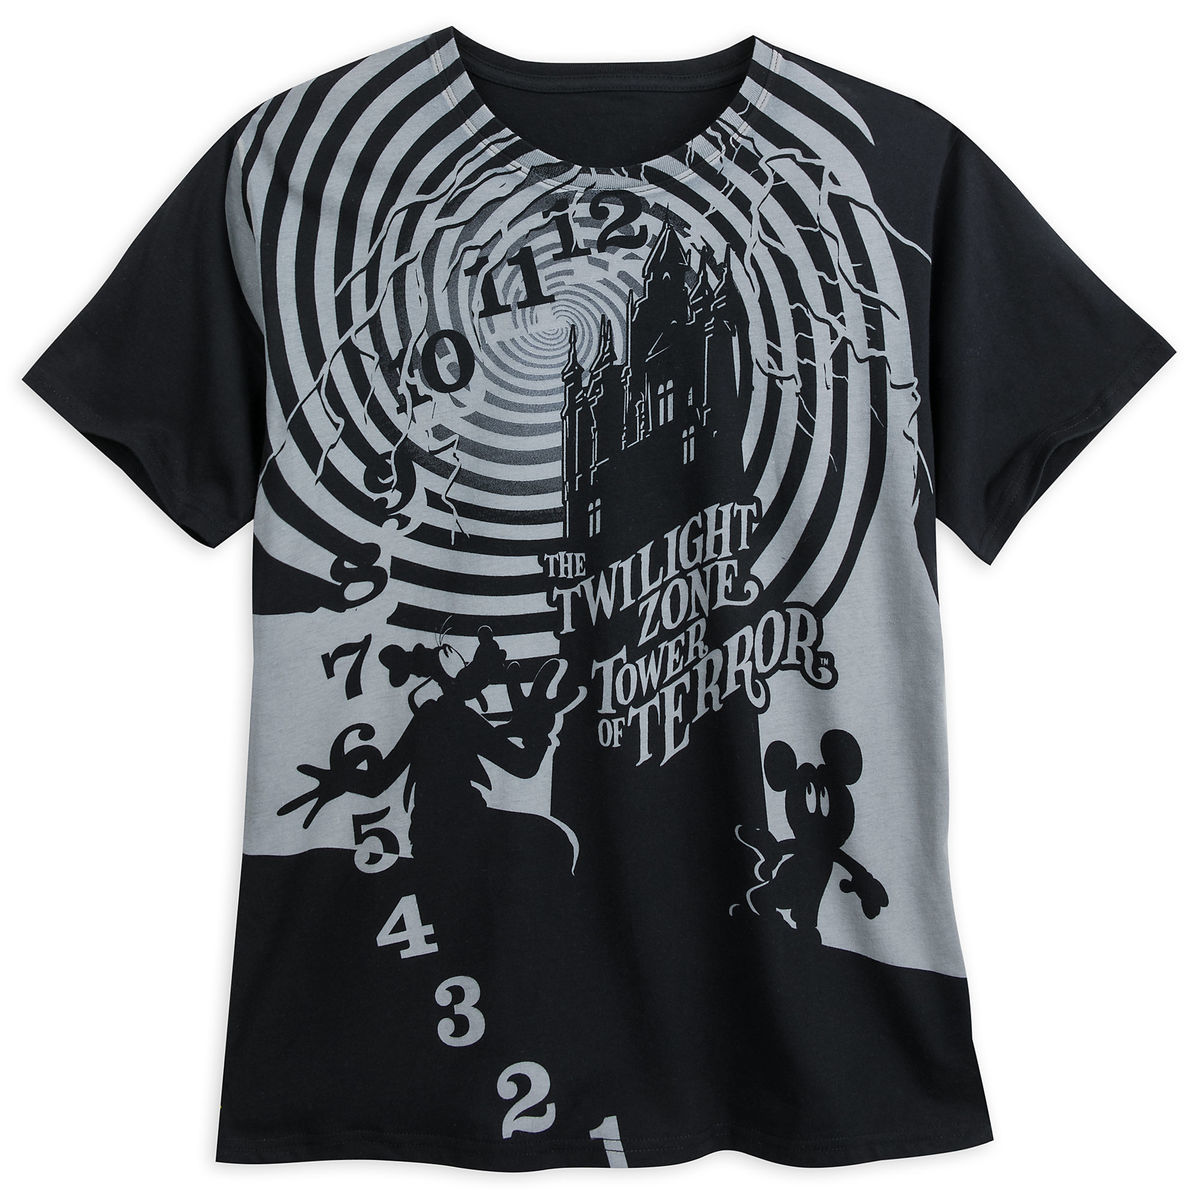 Product Image Of The Twilight Zone Tower Terror T Shirt For Adults